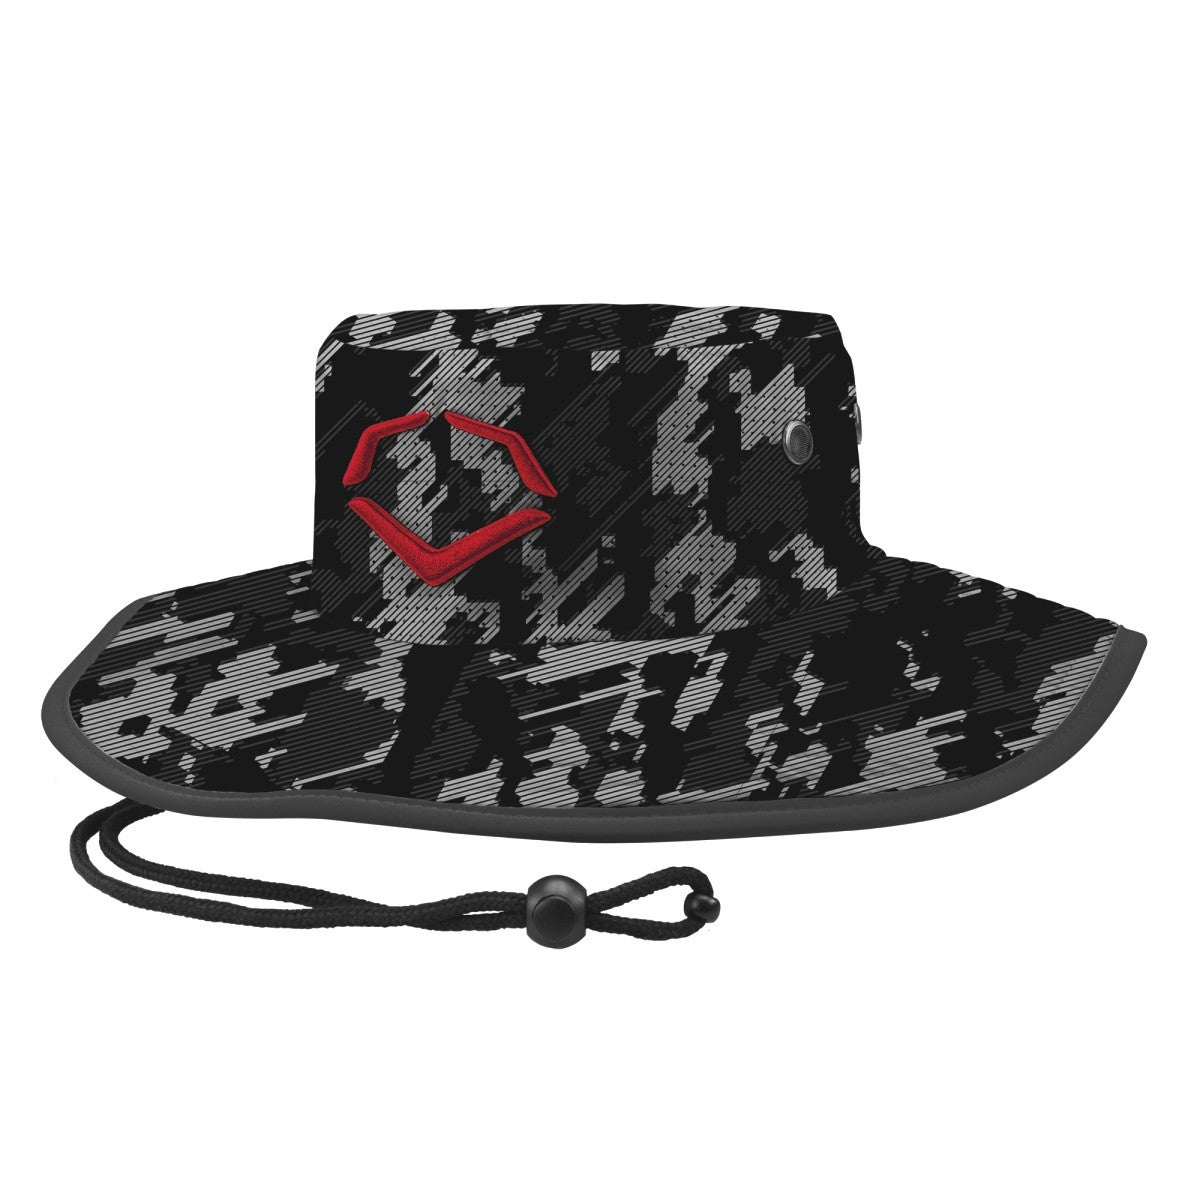 Bucket hat in Weve Evolved